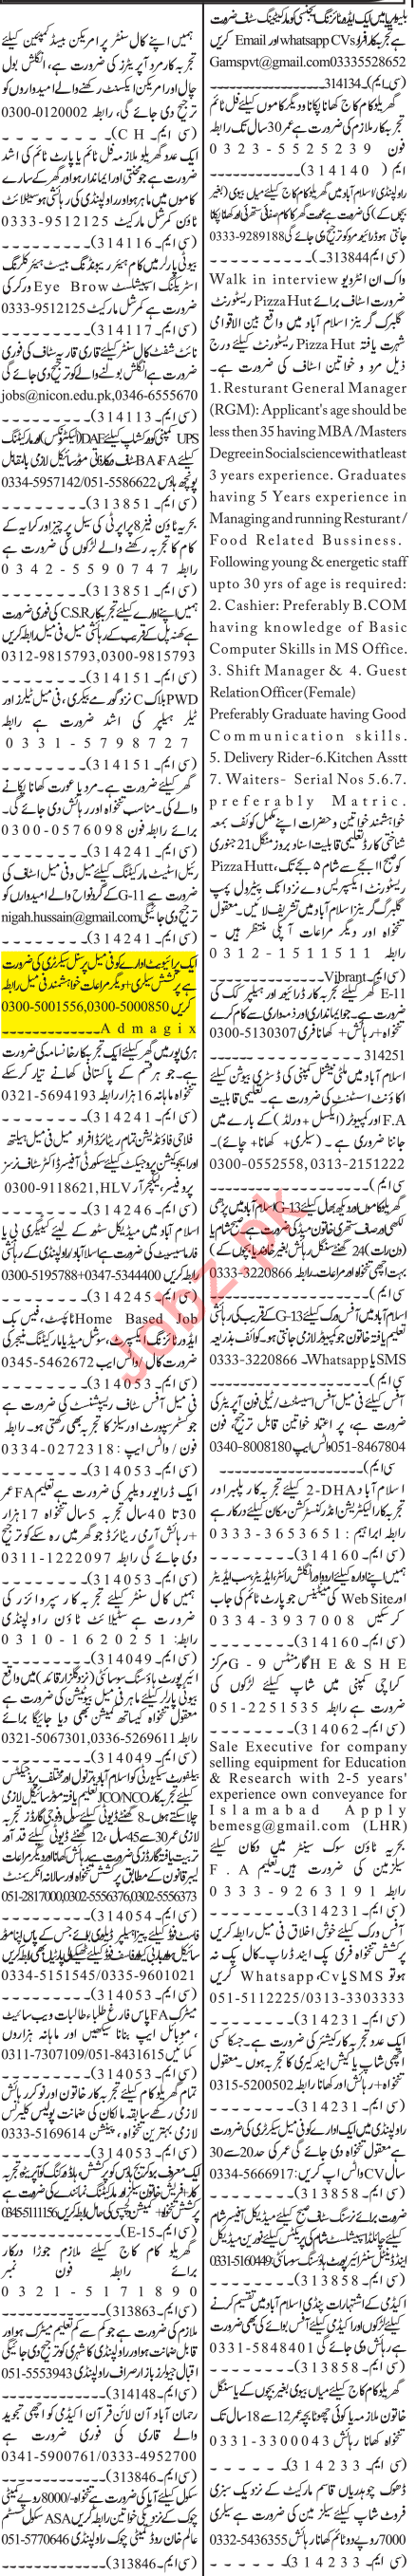 Jang Sunday Classified Ads 19 Jan 2020 for Office Staff